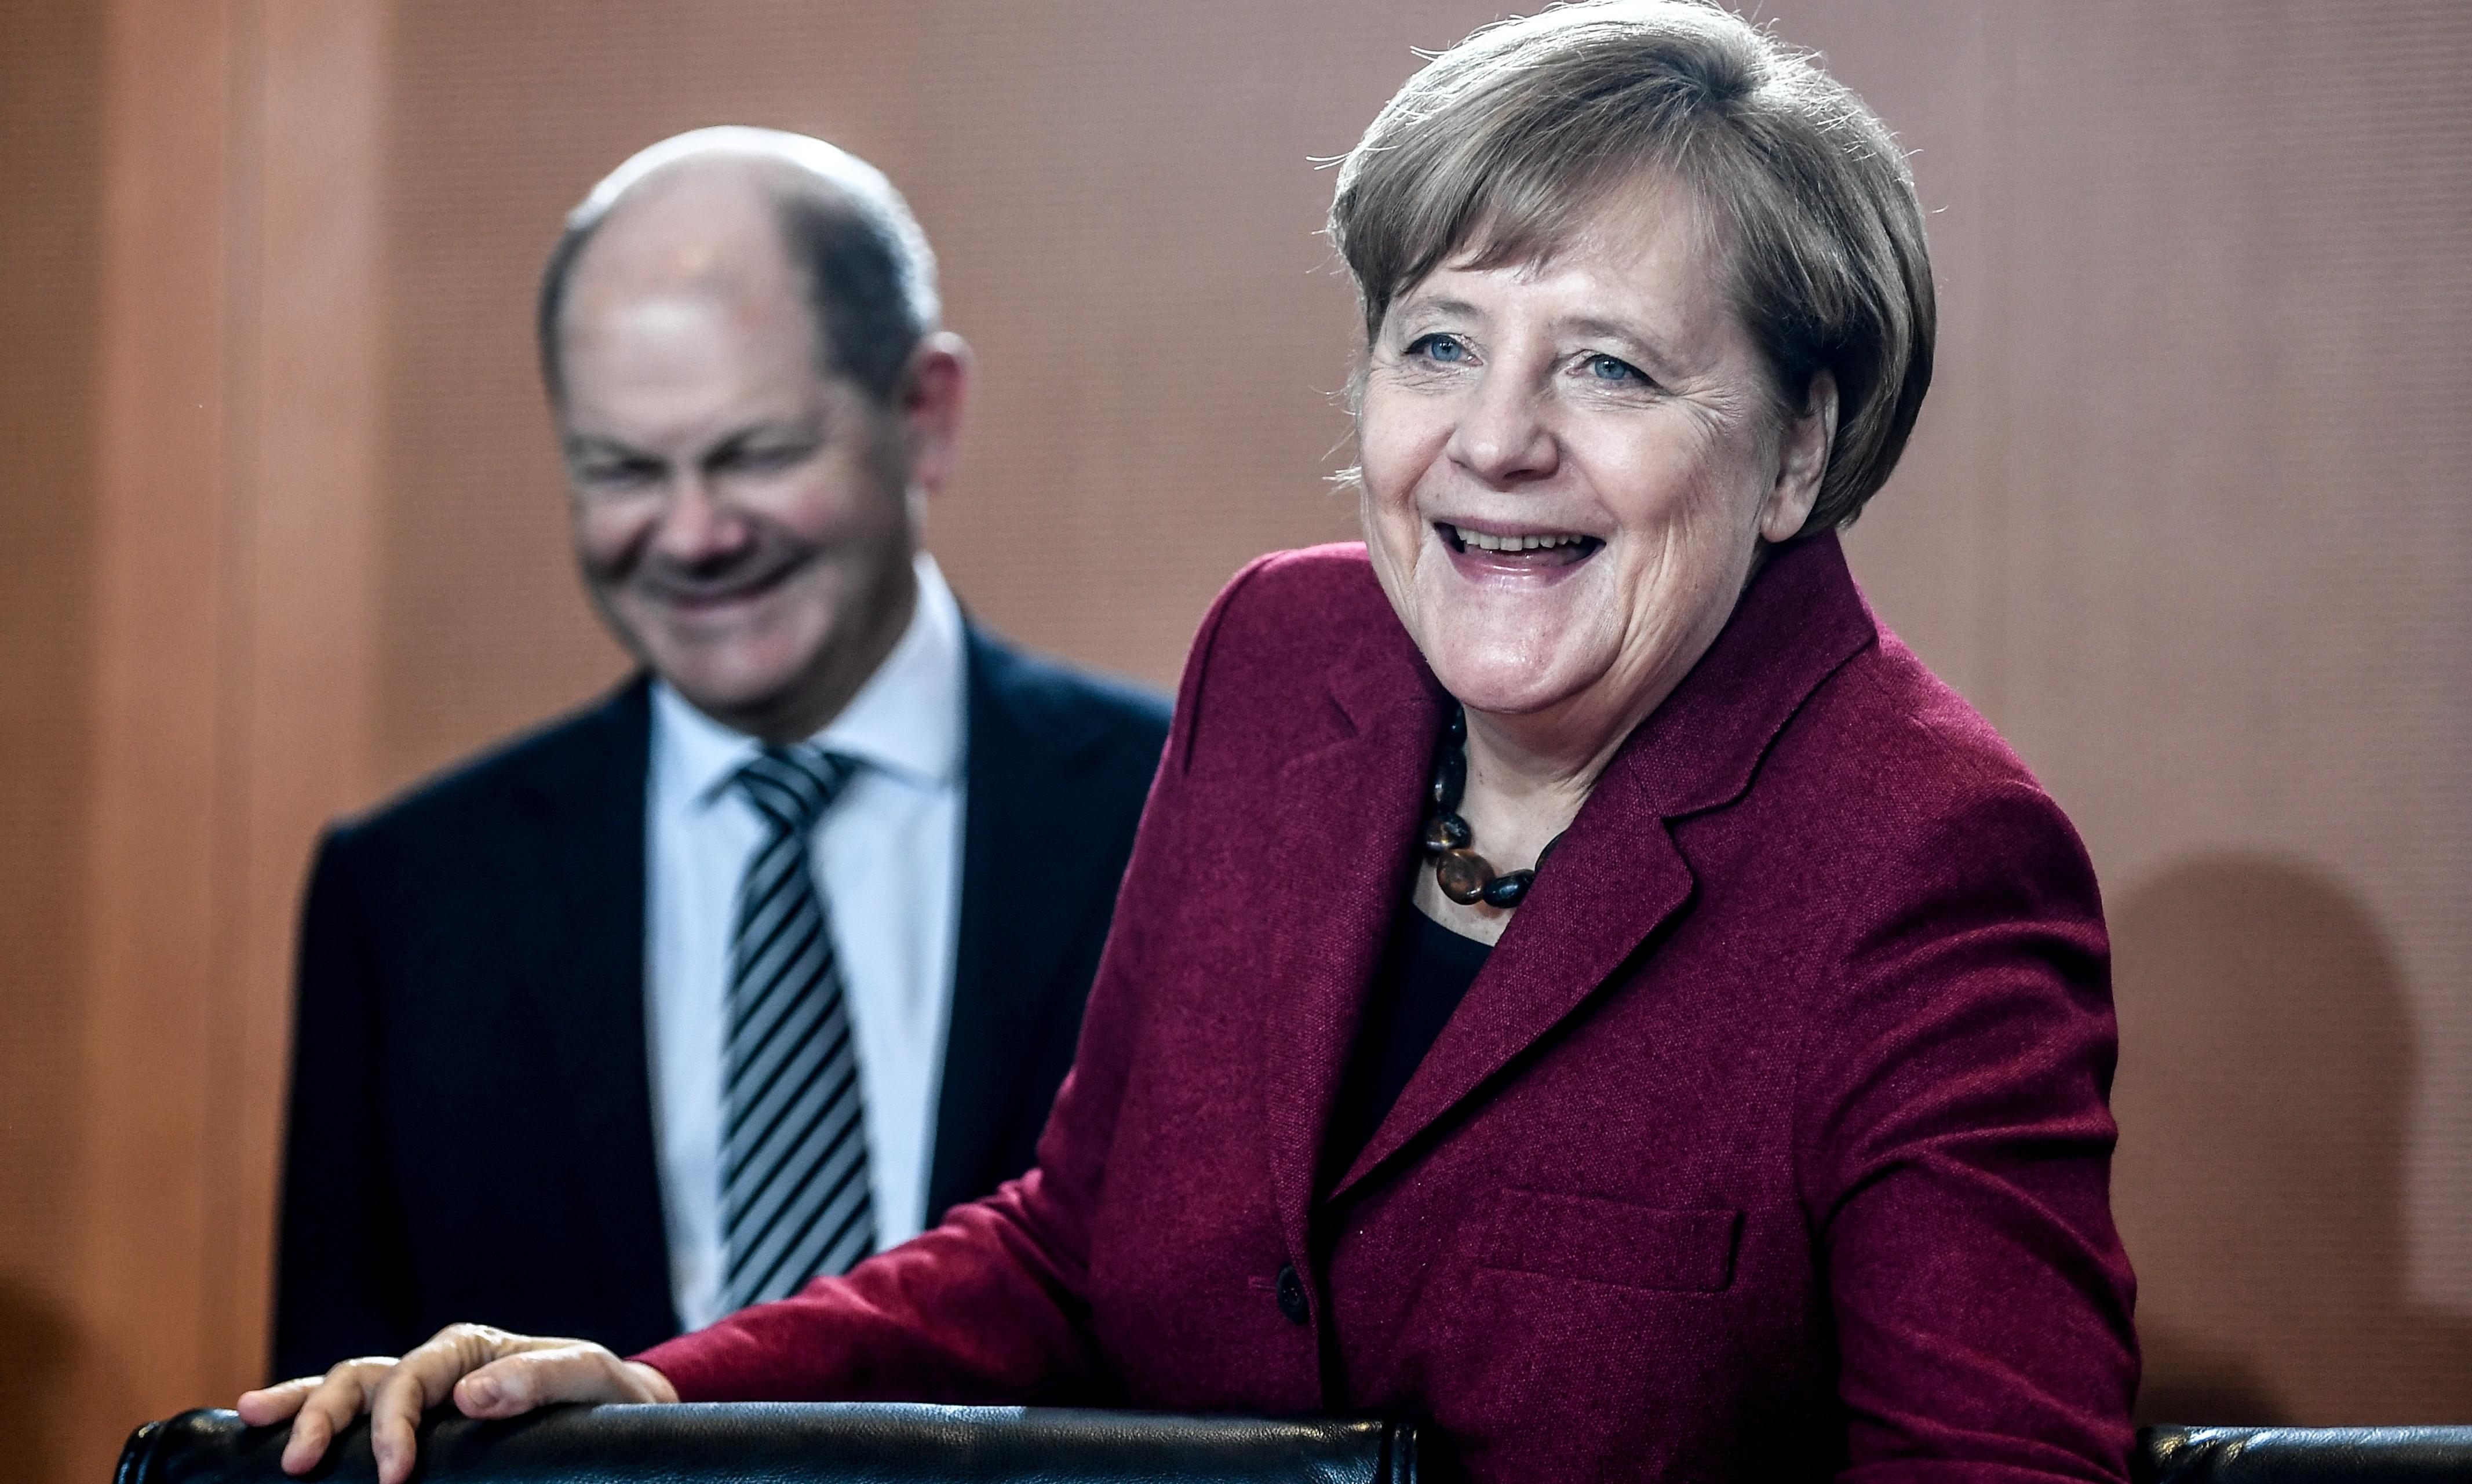 Don't rely on Germany to solve Brexit, it doesn't need to help Britain